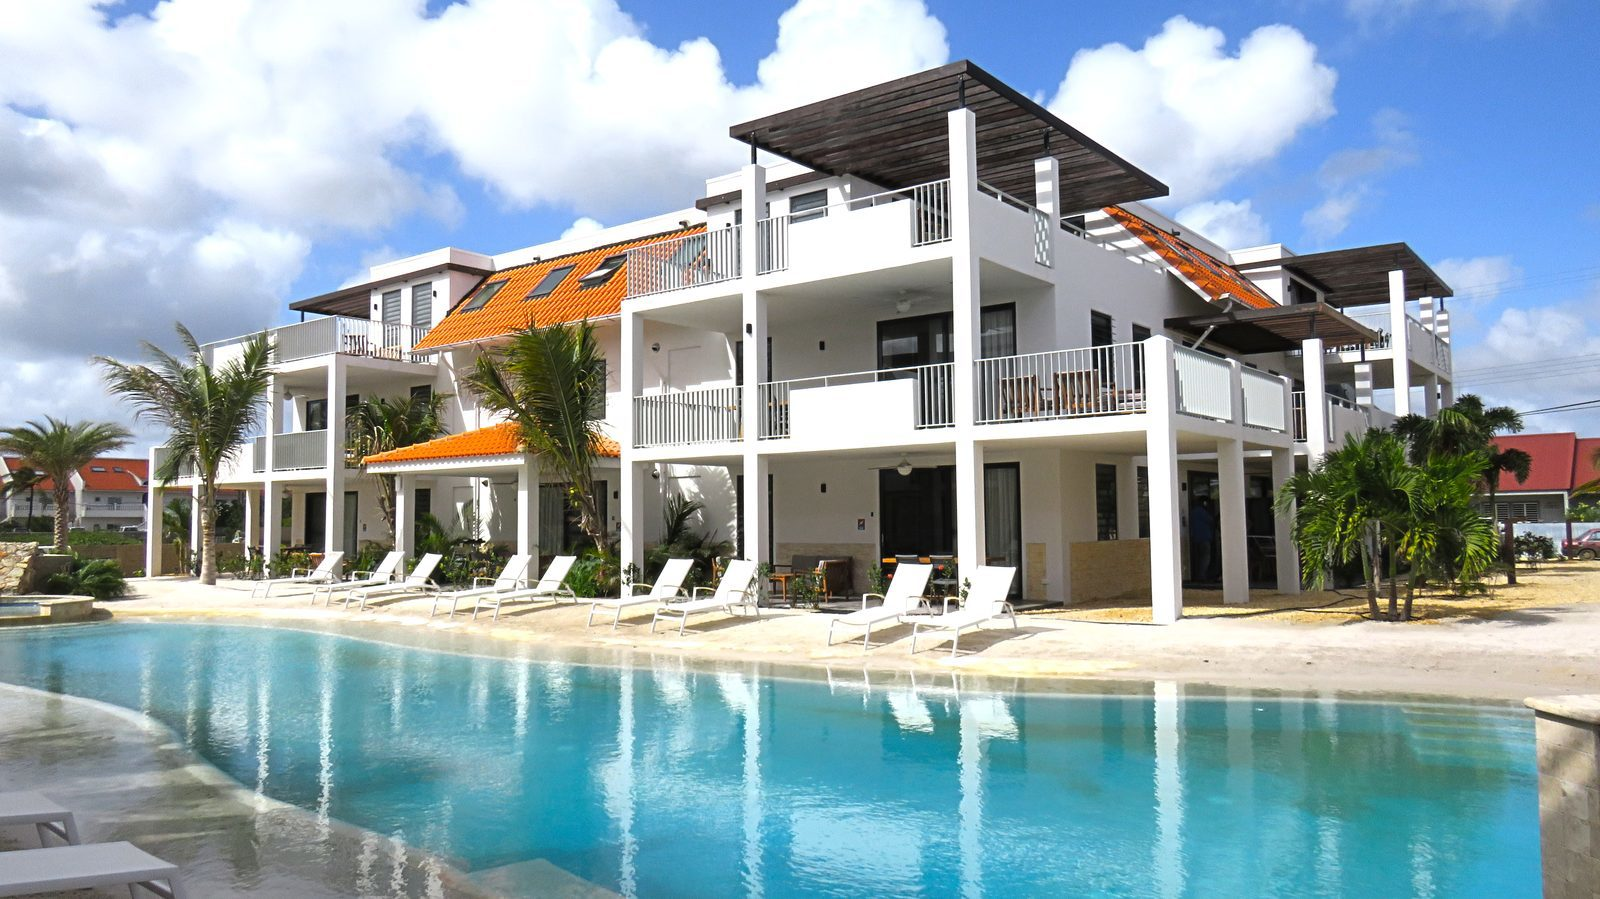 Luxury Resort with swimming pool on Bonaire